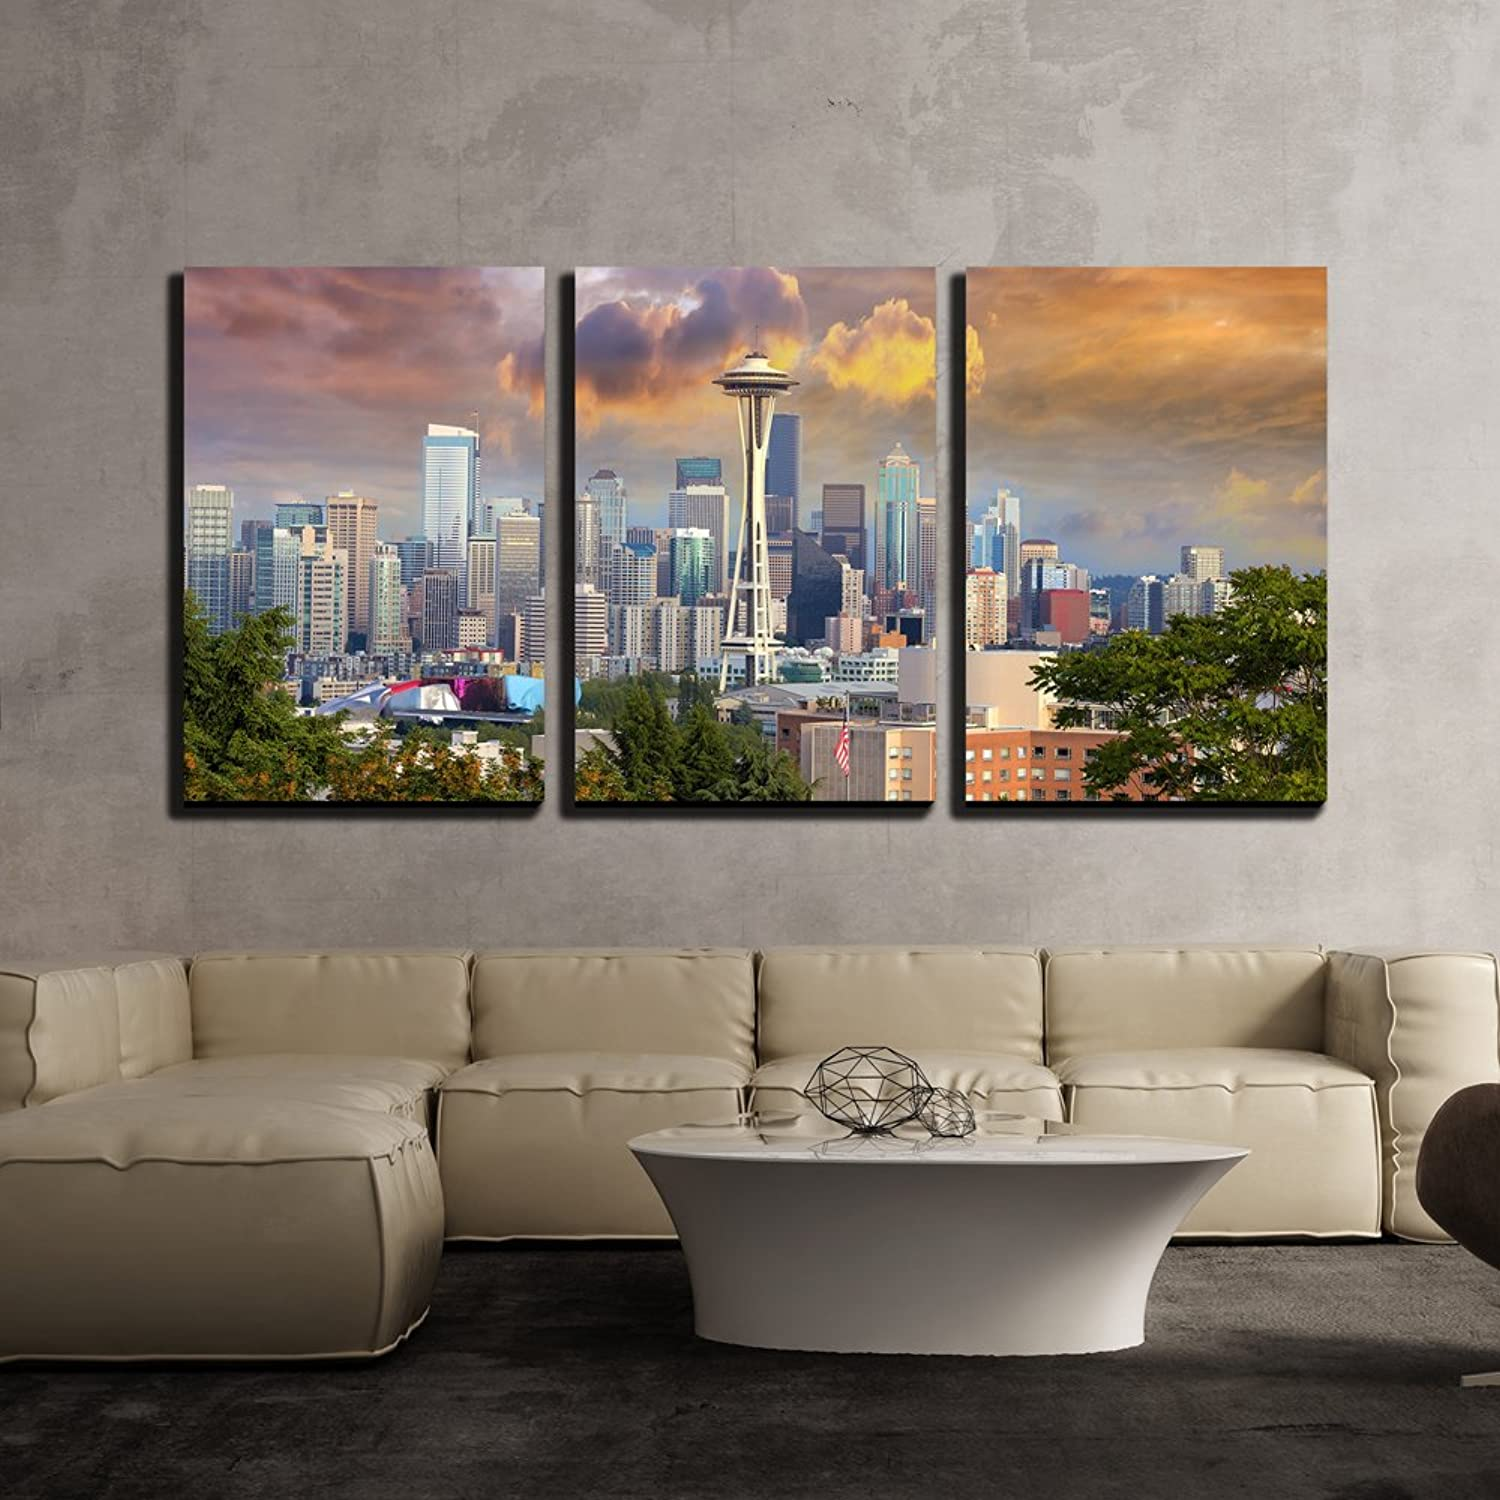 Wall26 - 3 Piece Canvas Wall Art - Seattle Washington Cityscape Skyline with Stormy Sky - Modern Home Decor Stretched and Framed Ready to Hang - 16 x24 x3 Panels